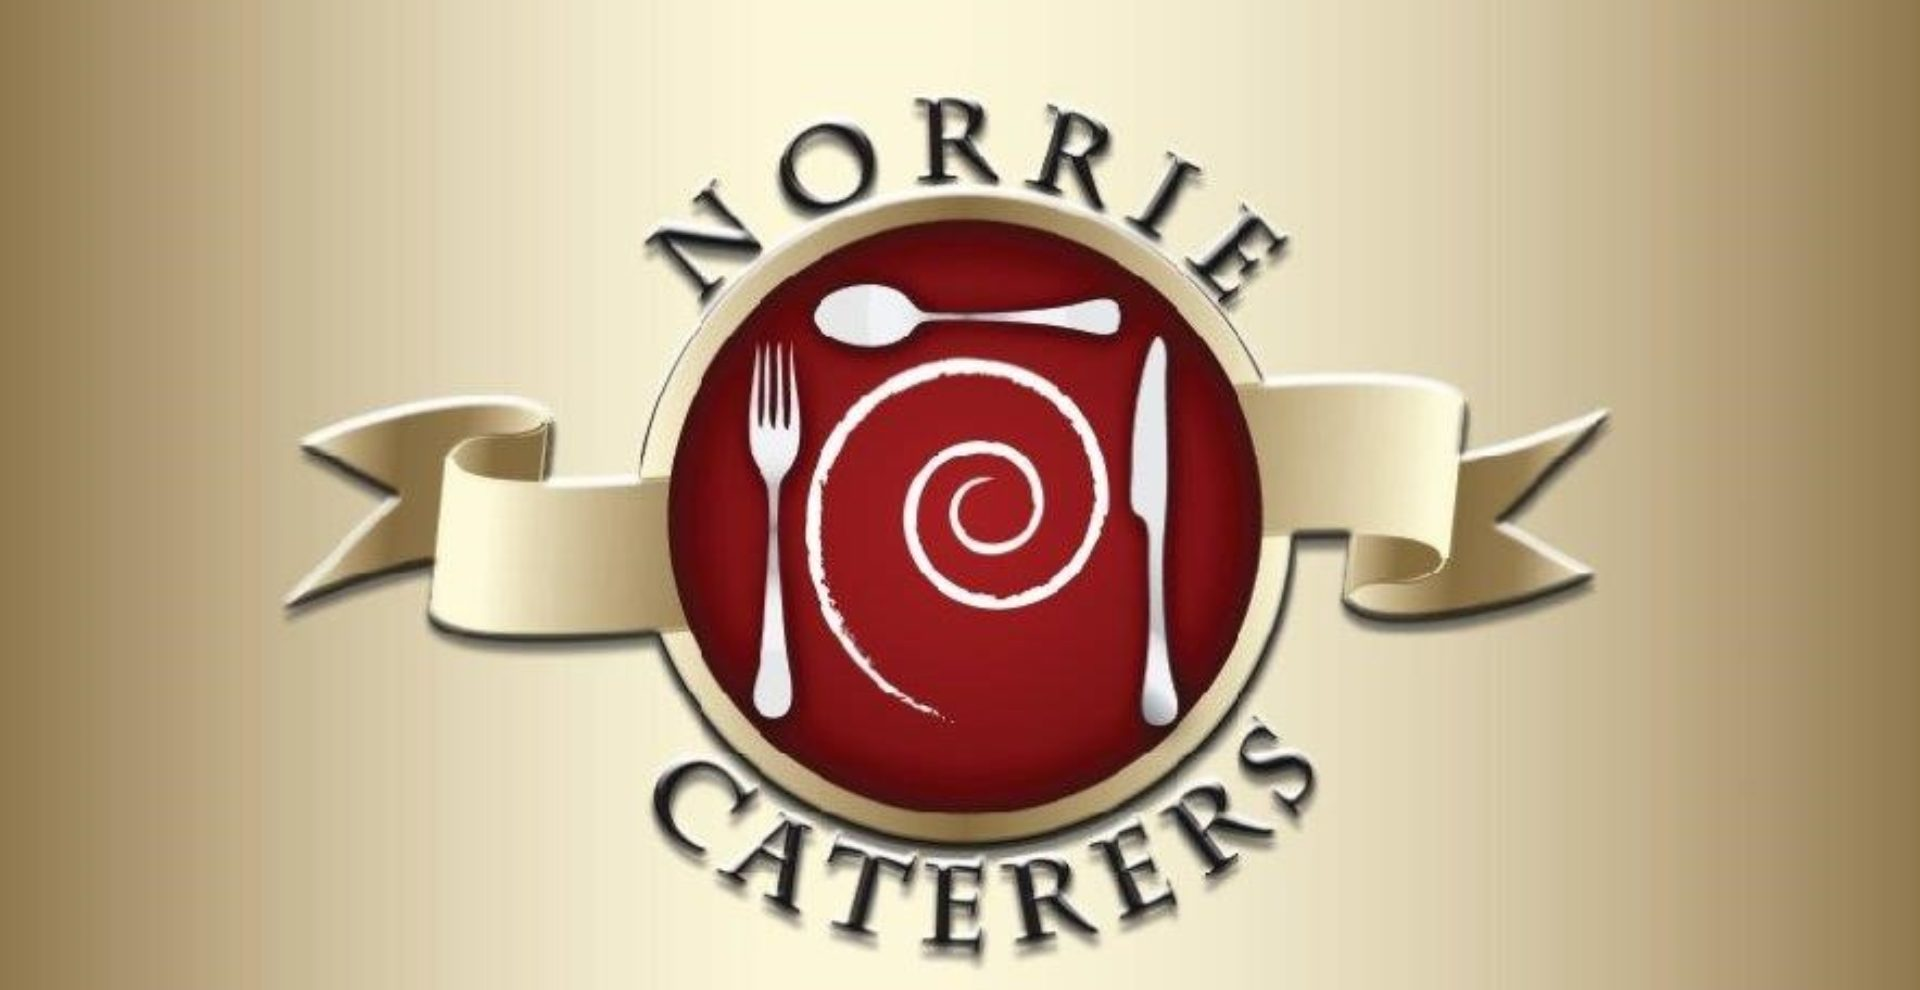 Norrie Caterers